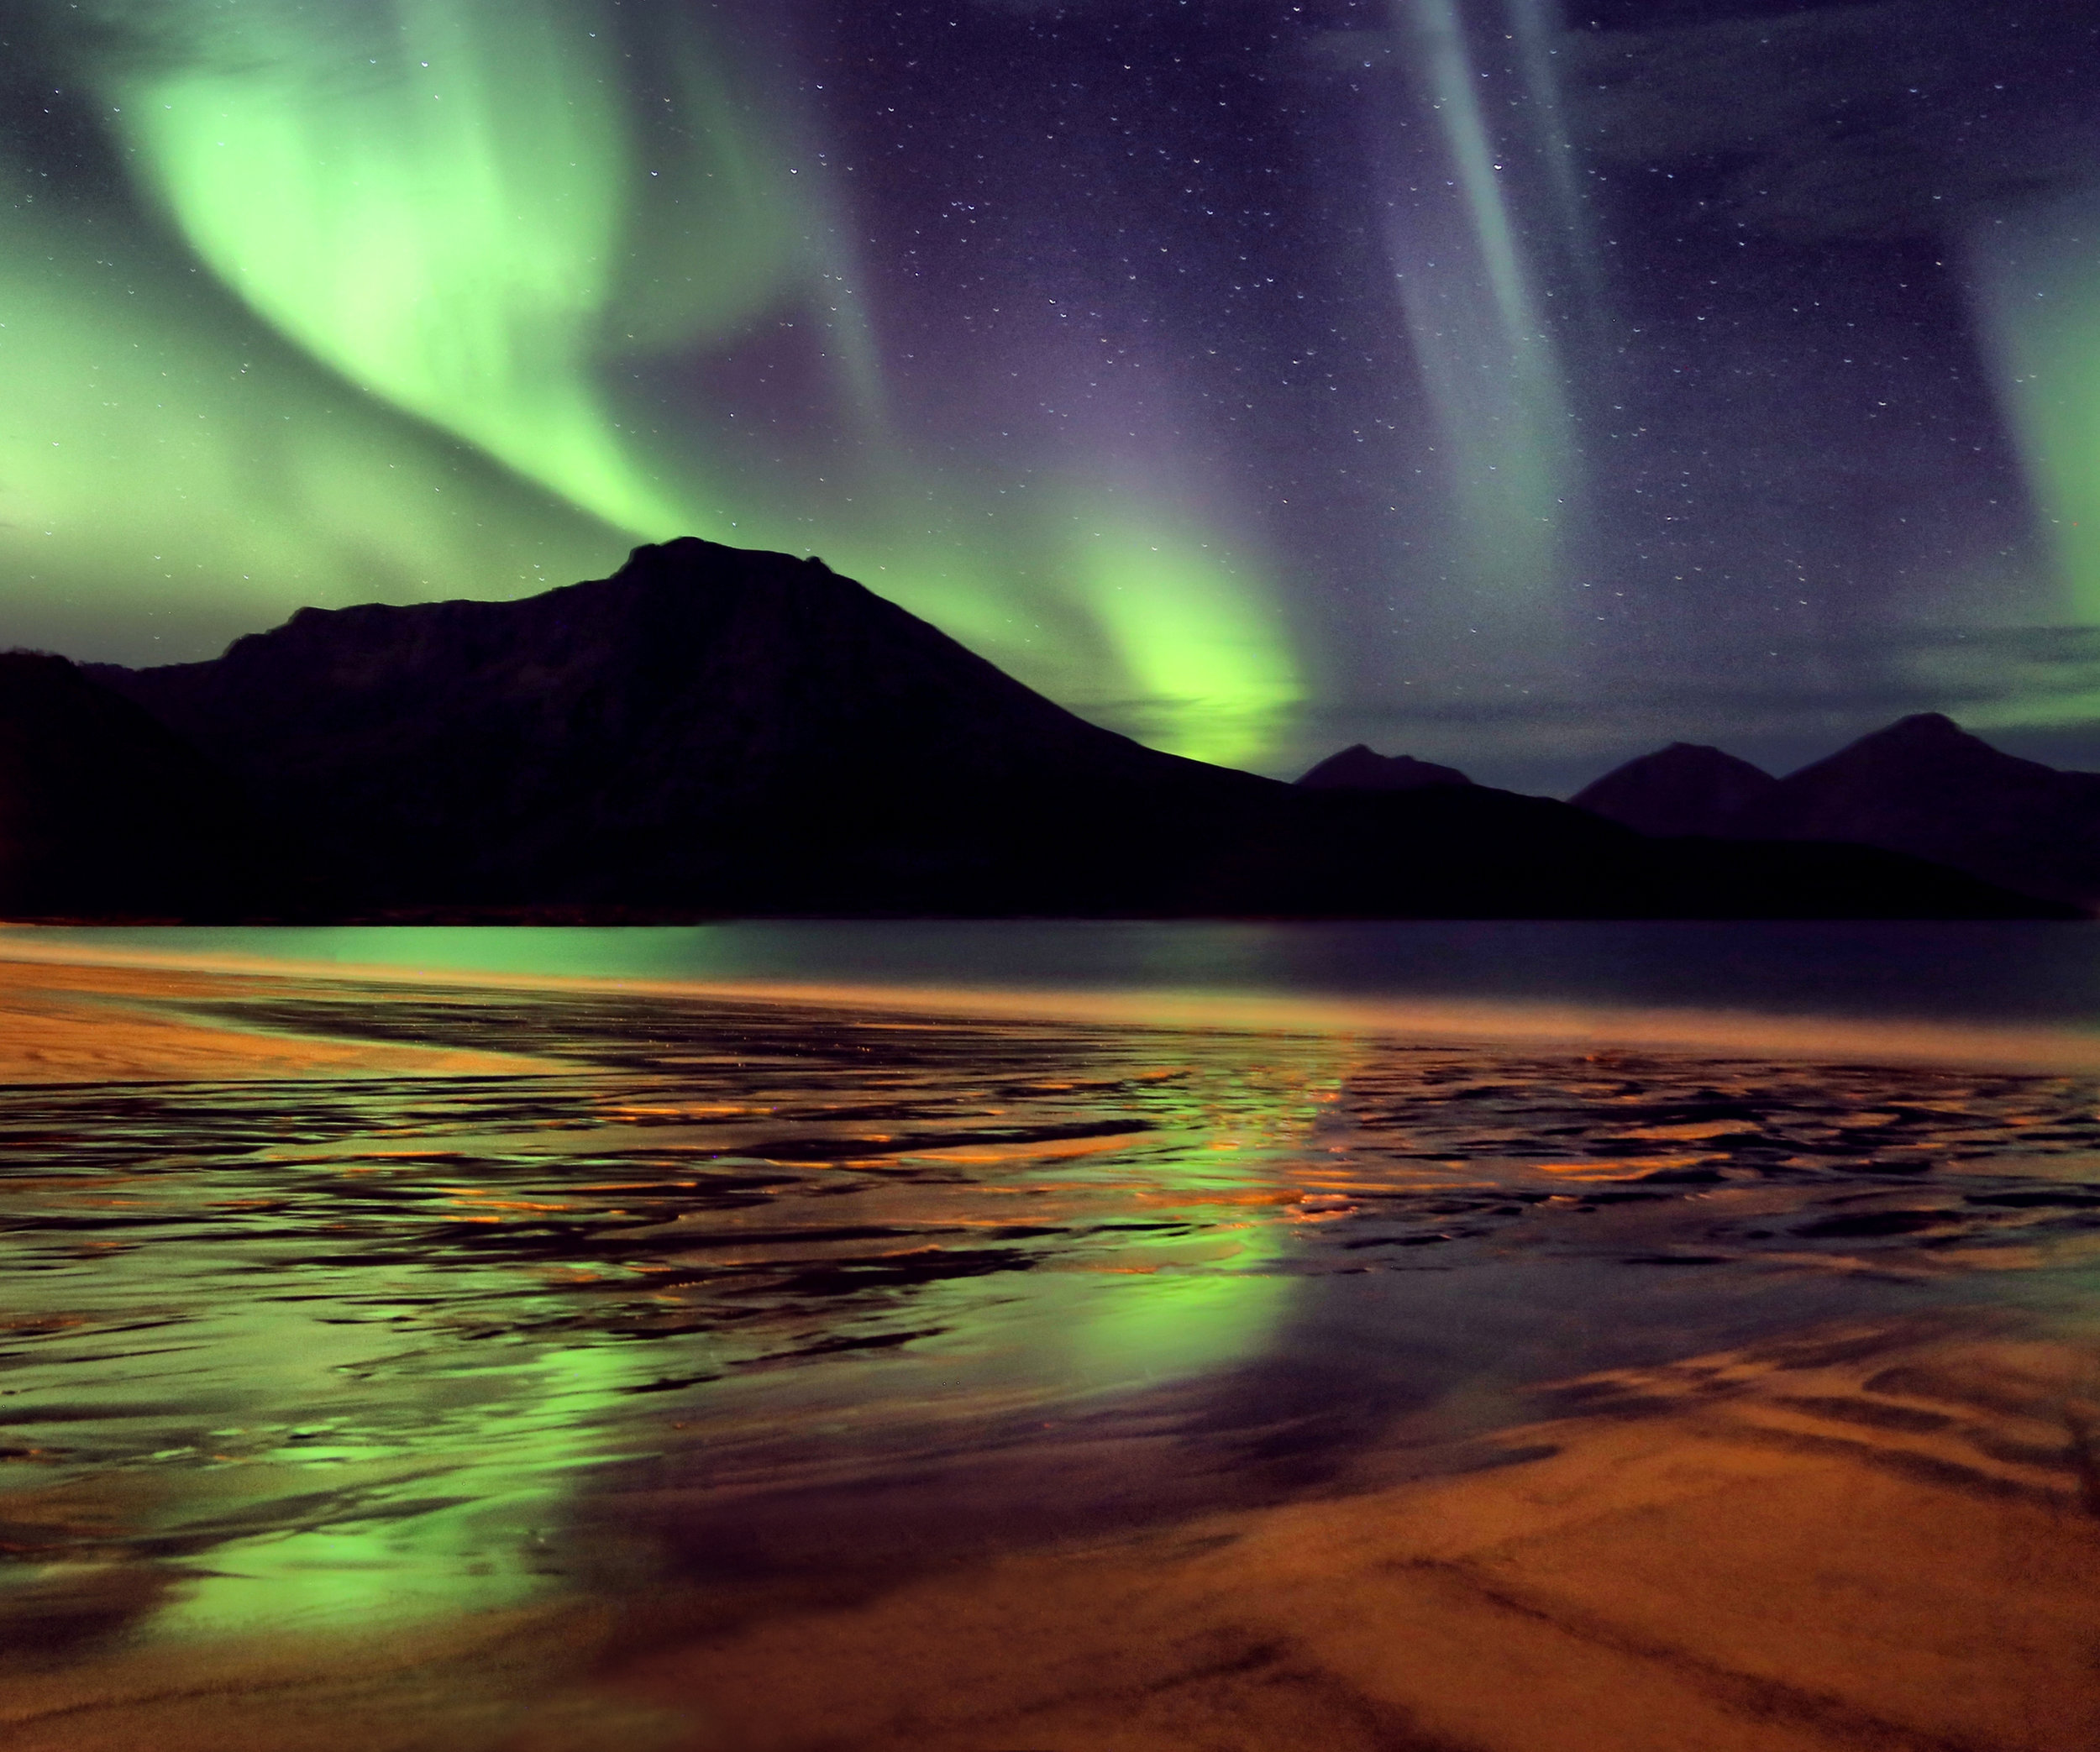 The stunning northern lights in northern Norway, near the city of Tromsø .